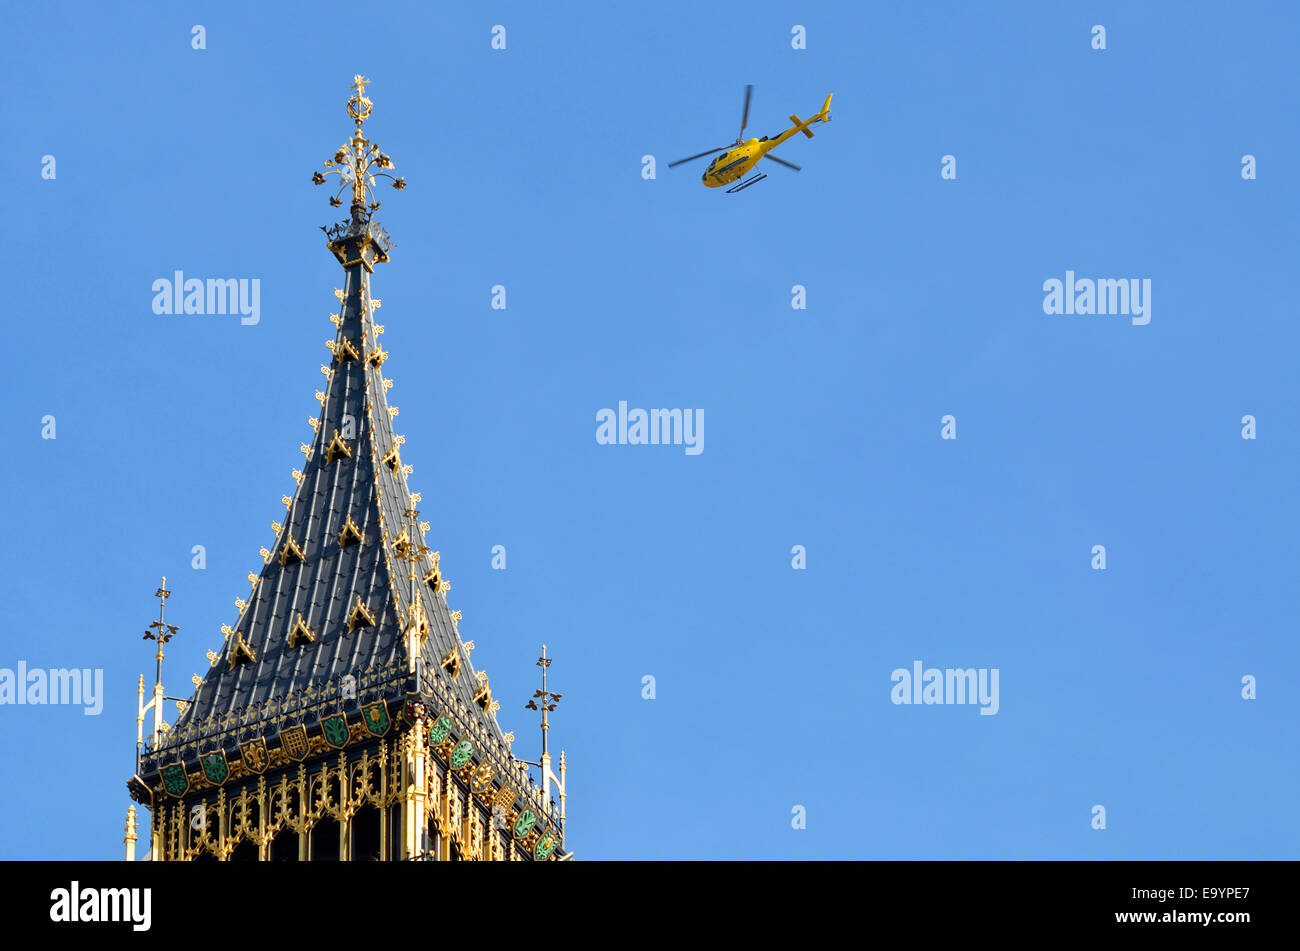 London, England, UK. Helicopter flying over the Houses of Parliament - Stock Image